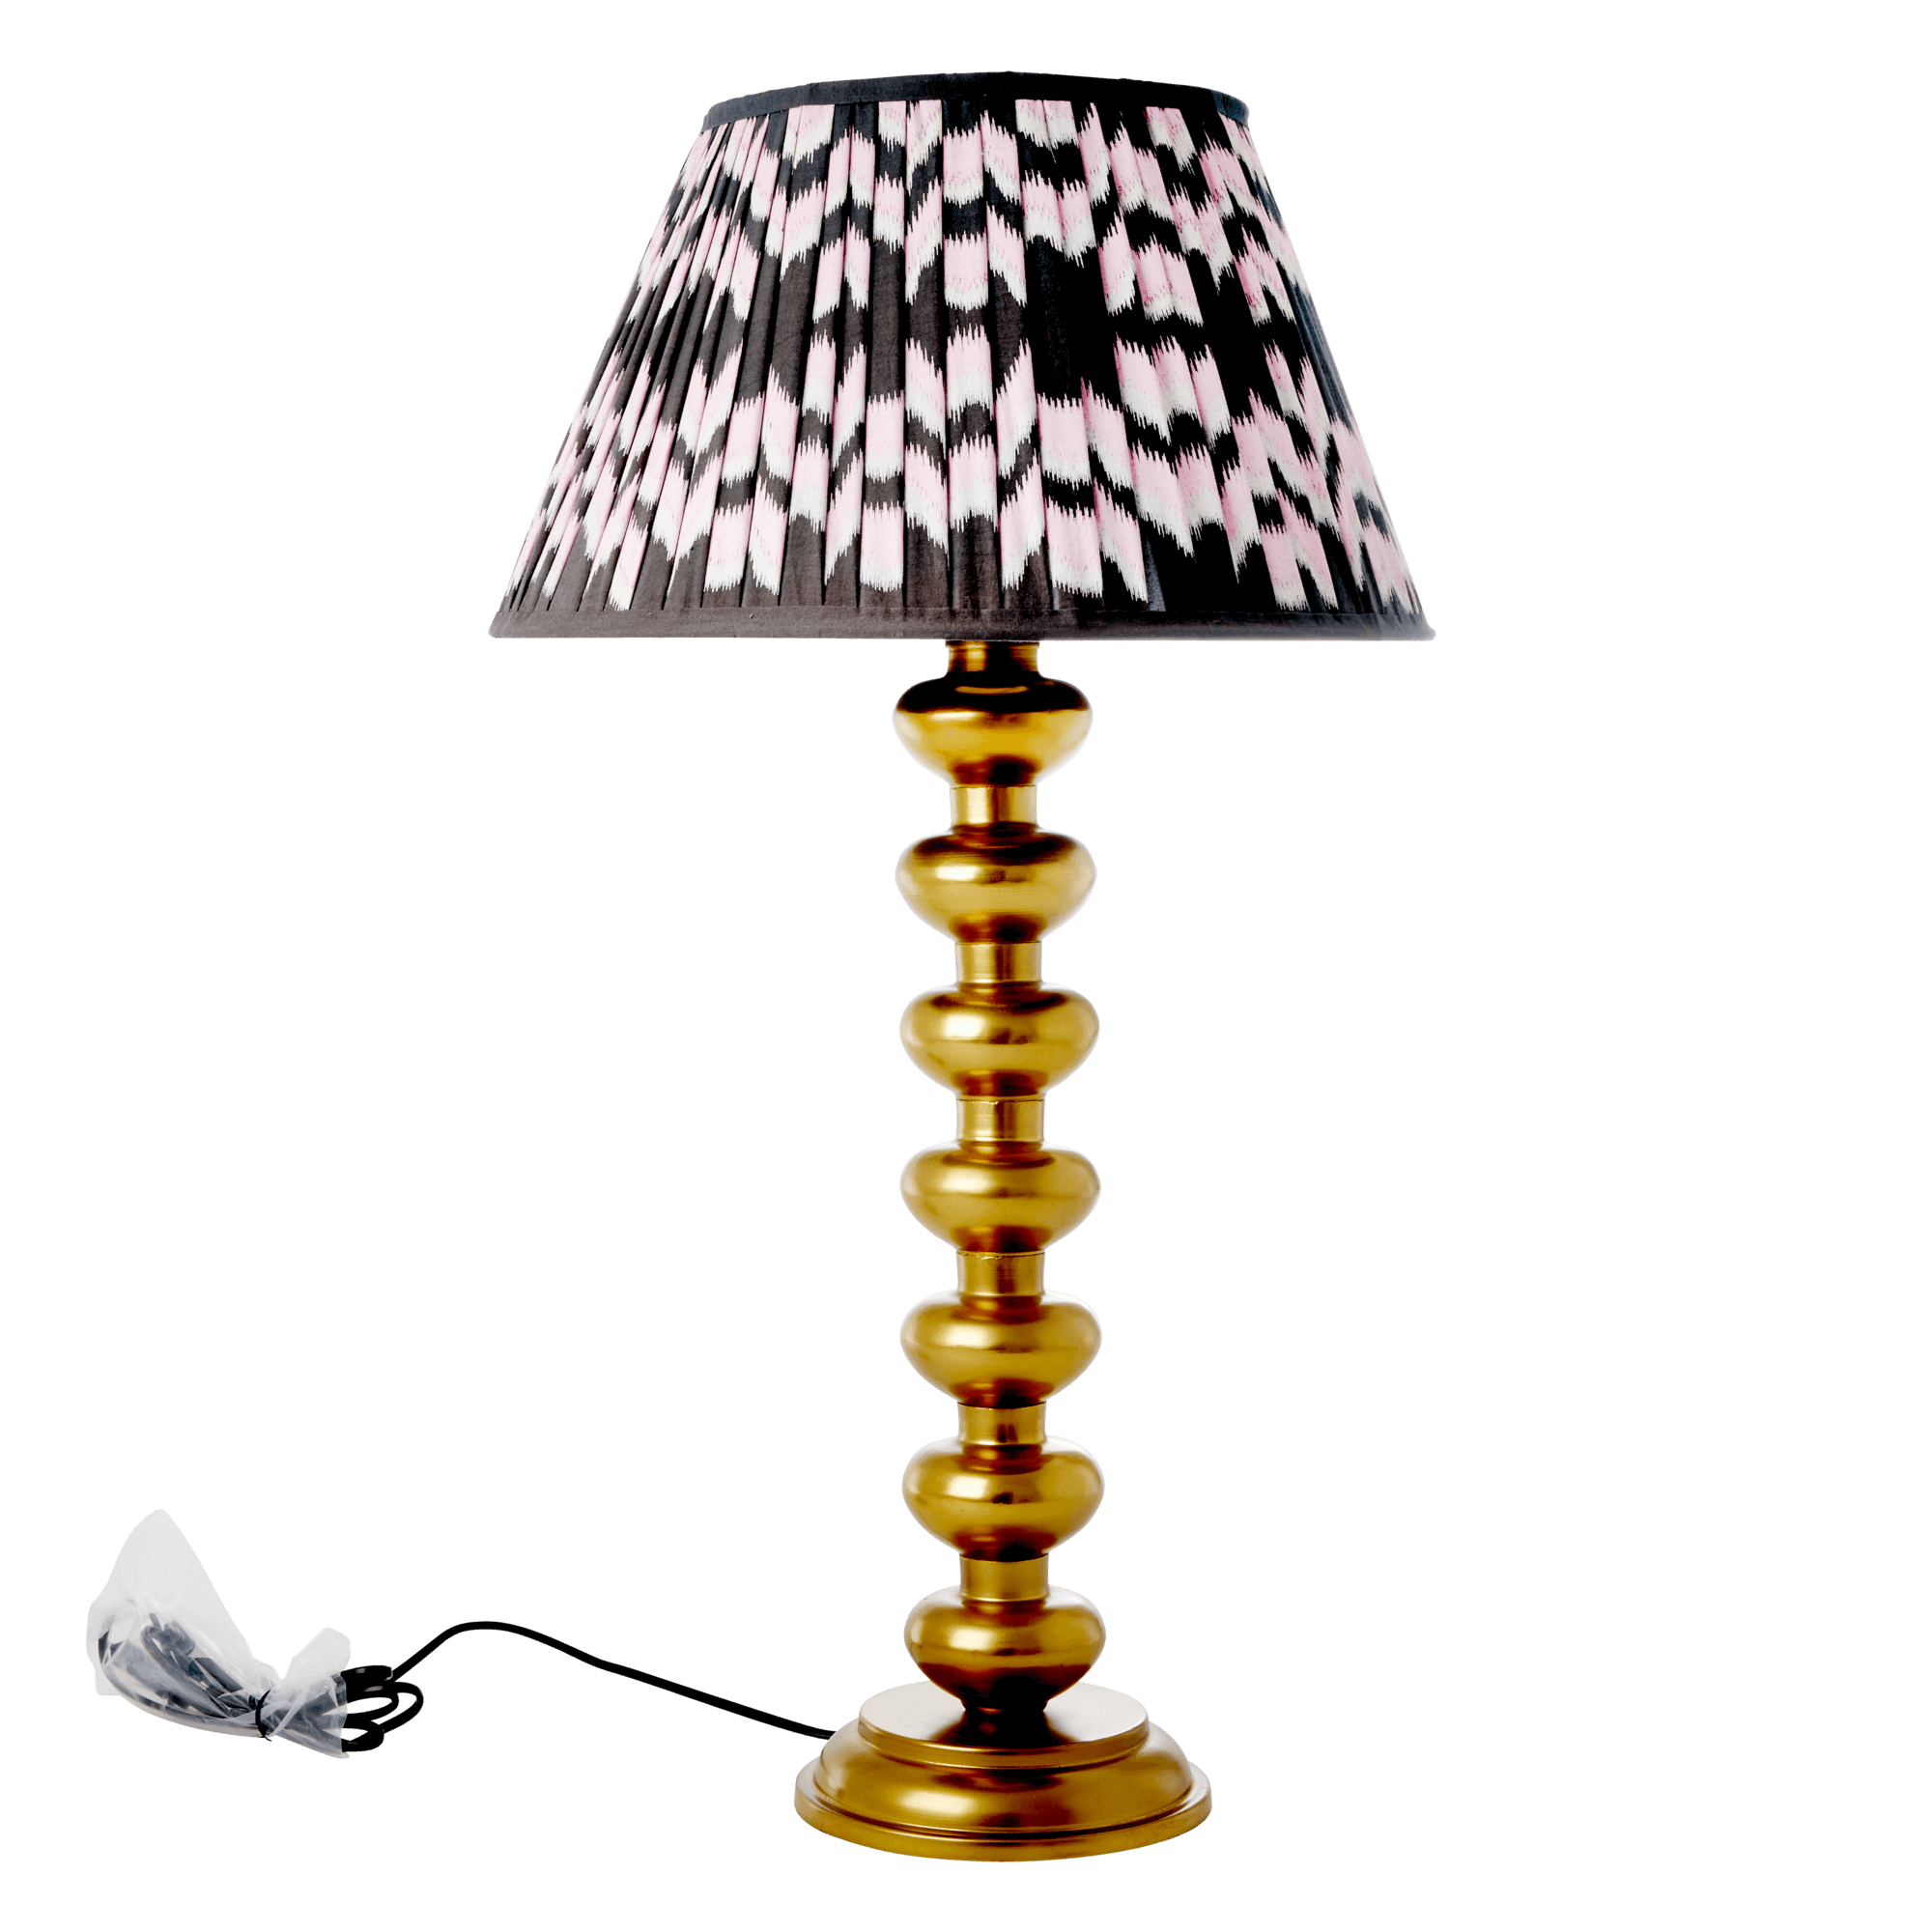 Picture of: Kob Rice Metal Bord Lampe I Guld Gold Inkl Fragt